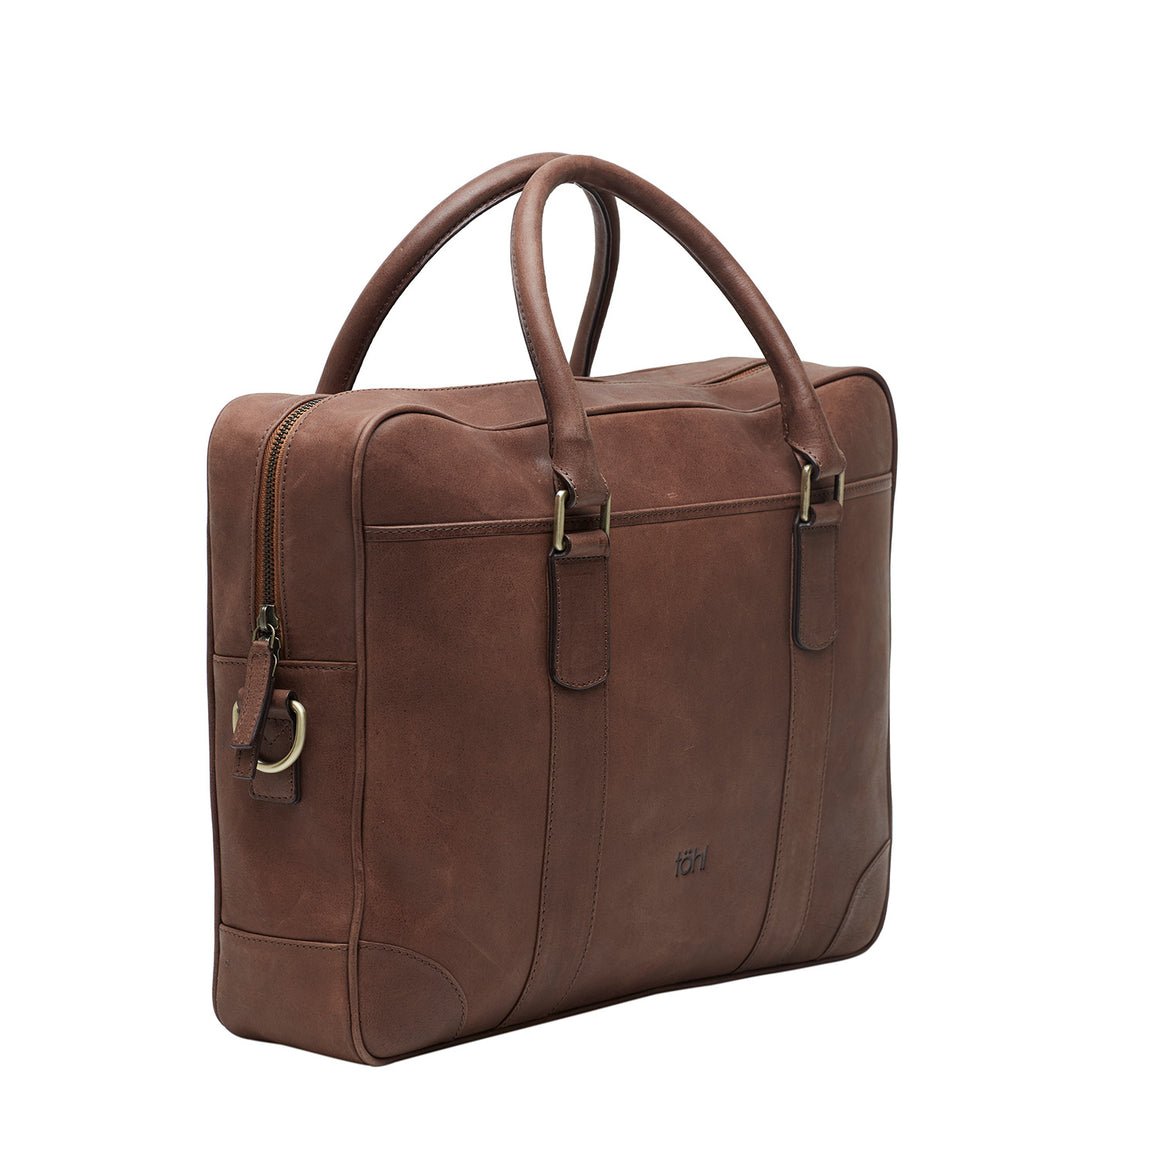 LB 0002 - TOHL ZANON MEN'S LAPTOP BAG - TAN